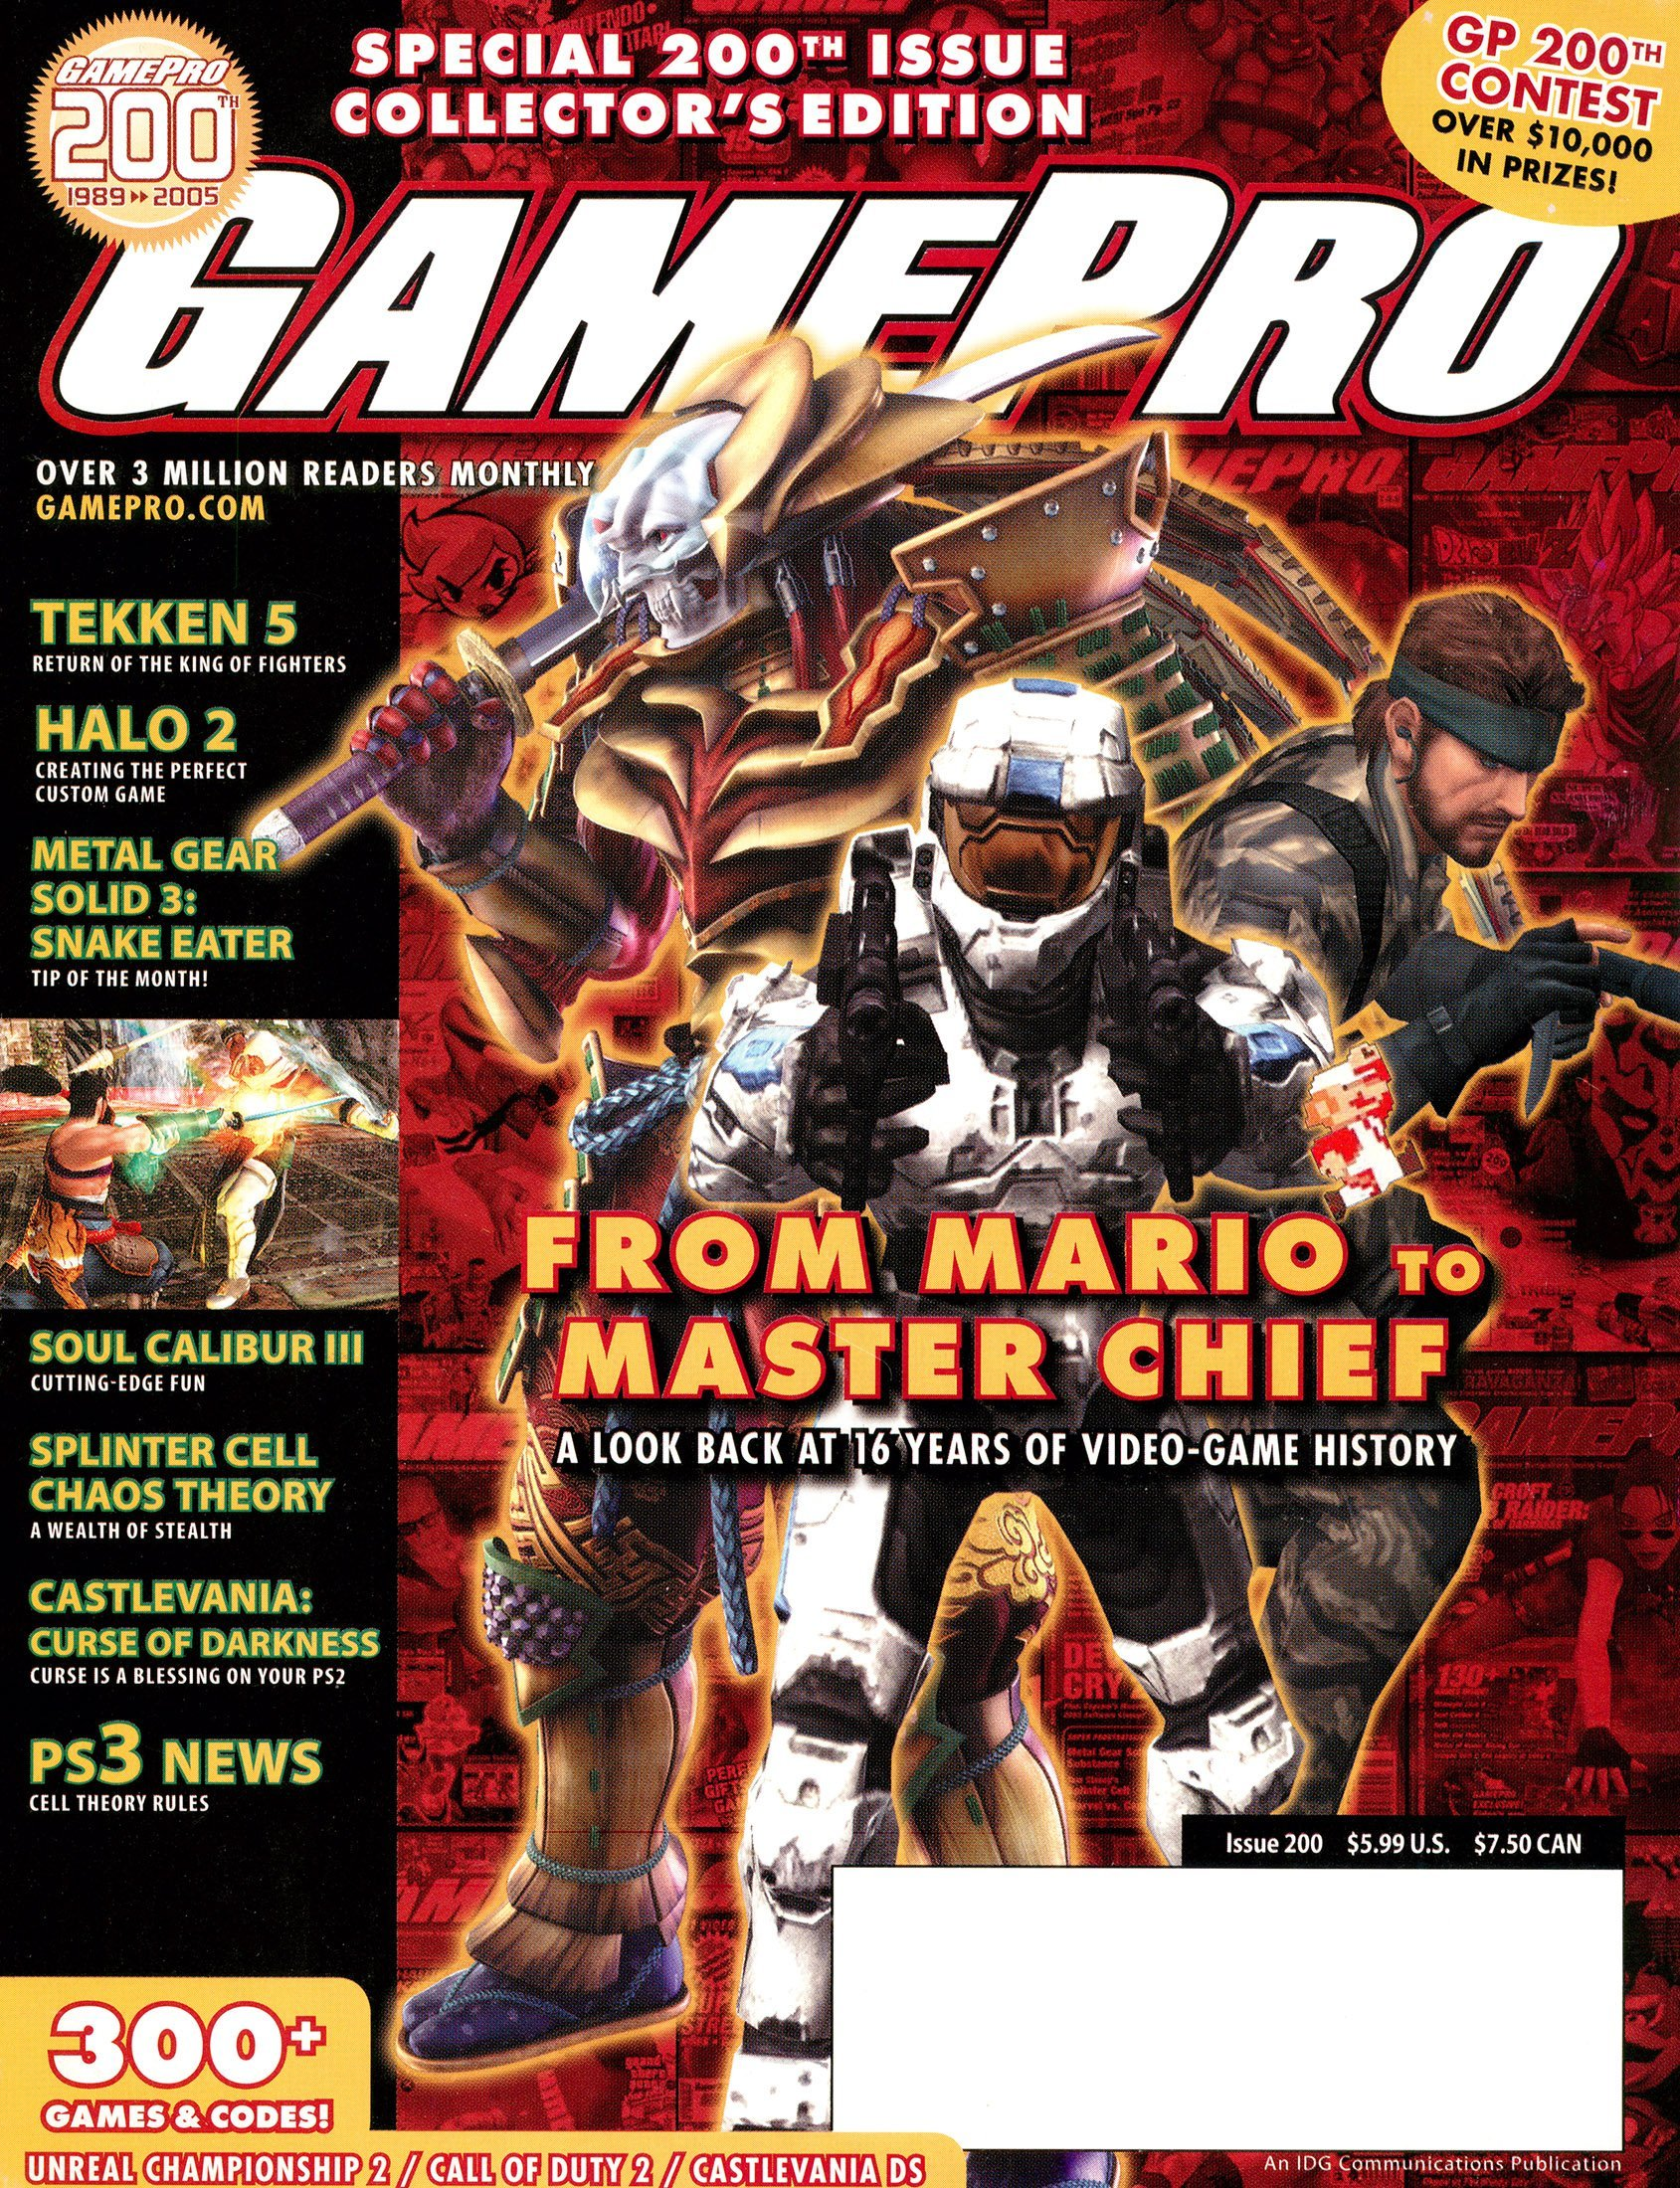 Gamepro Issue 200 May 2005